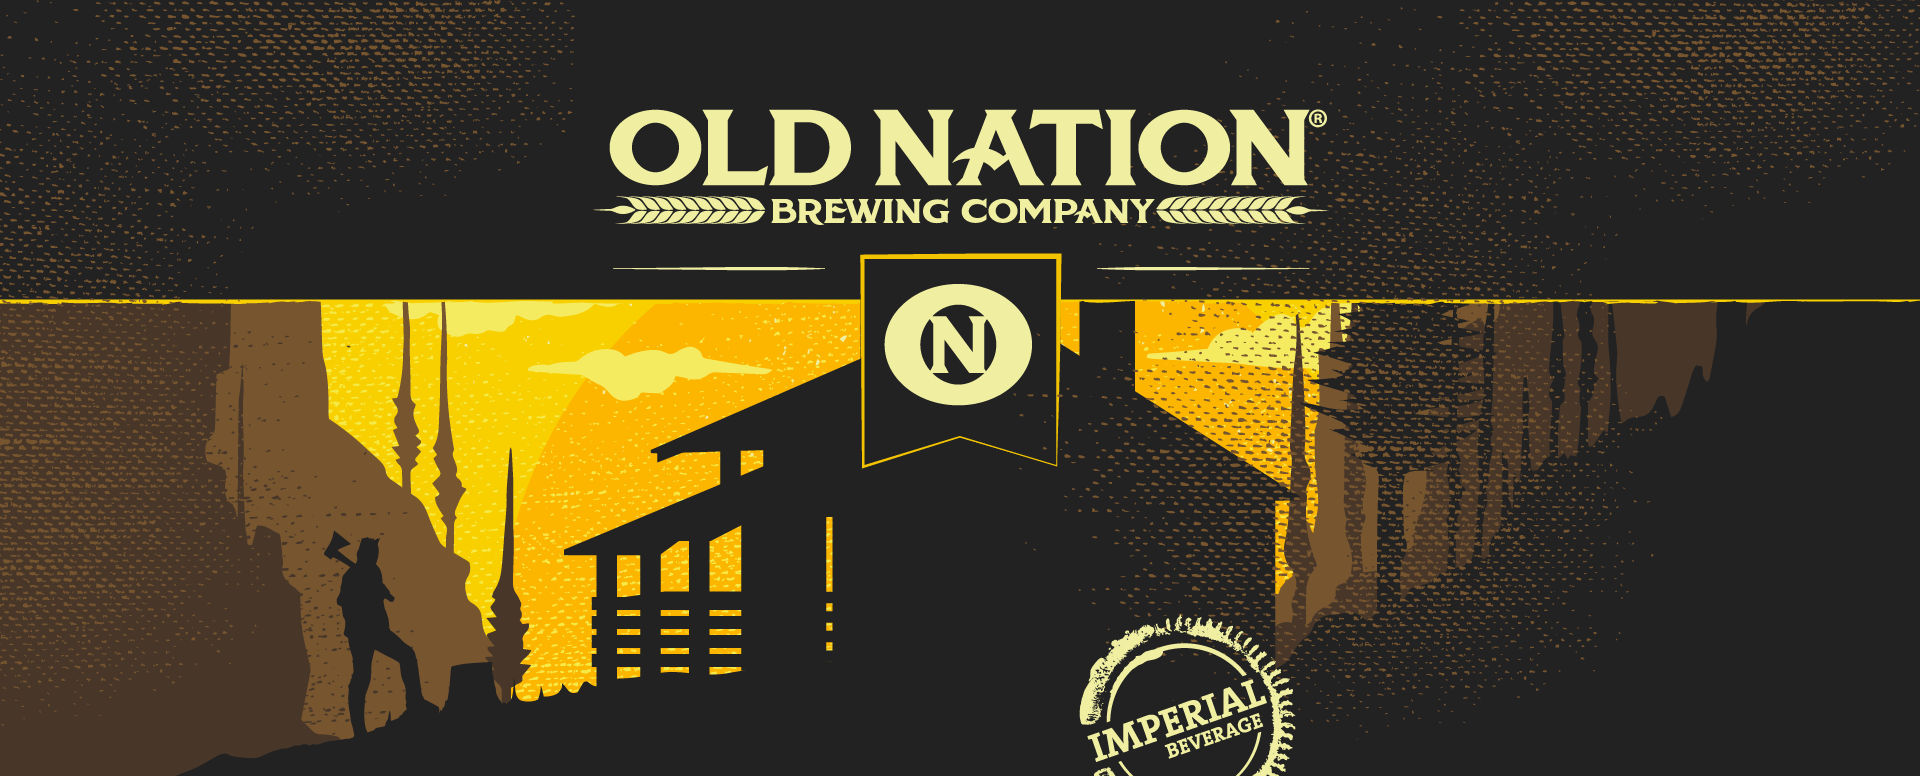 Imperial Beverage Old Nation